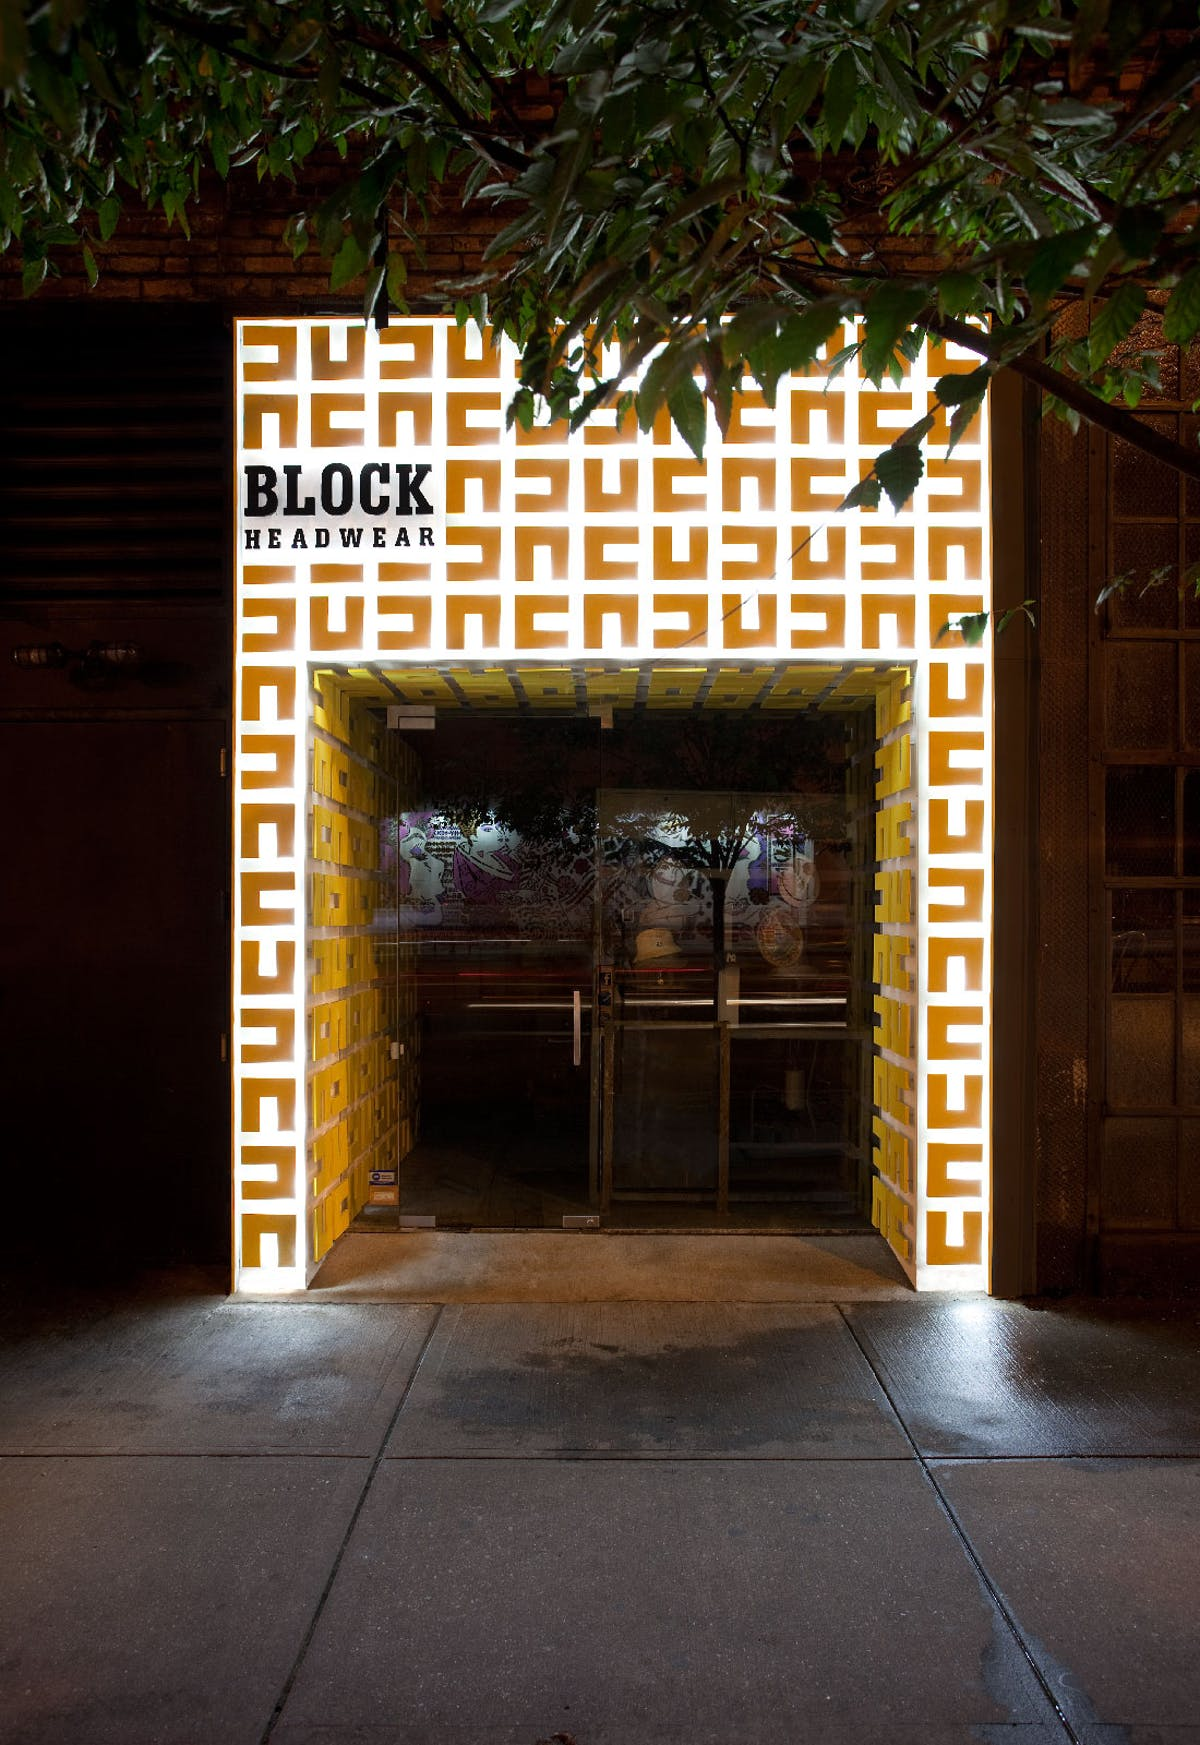 Brooklyn New School >> Block Headwear retail storefront design | Sergio Mannino | Archinect